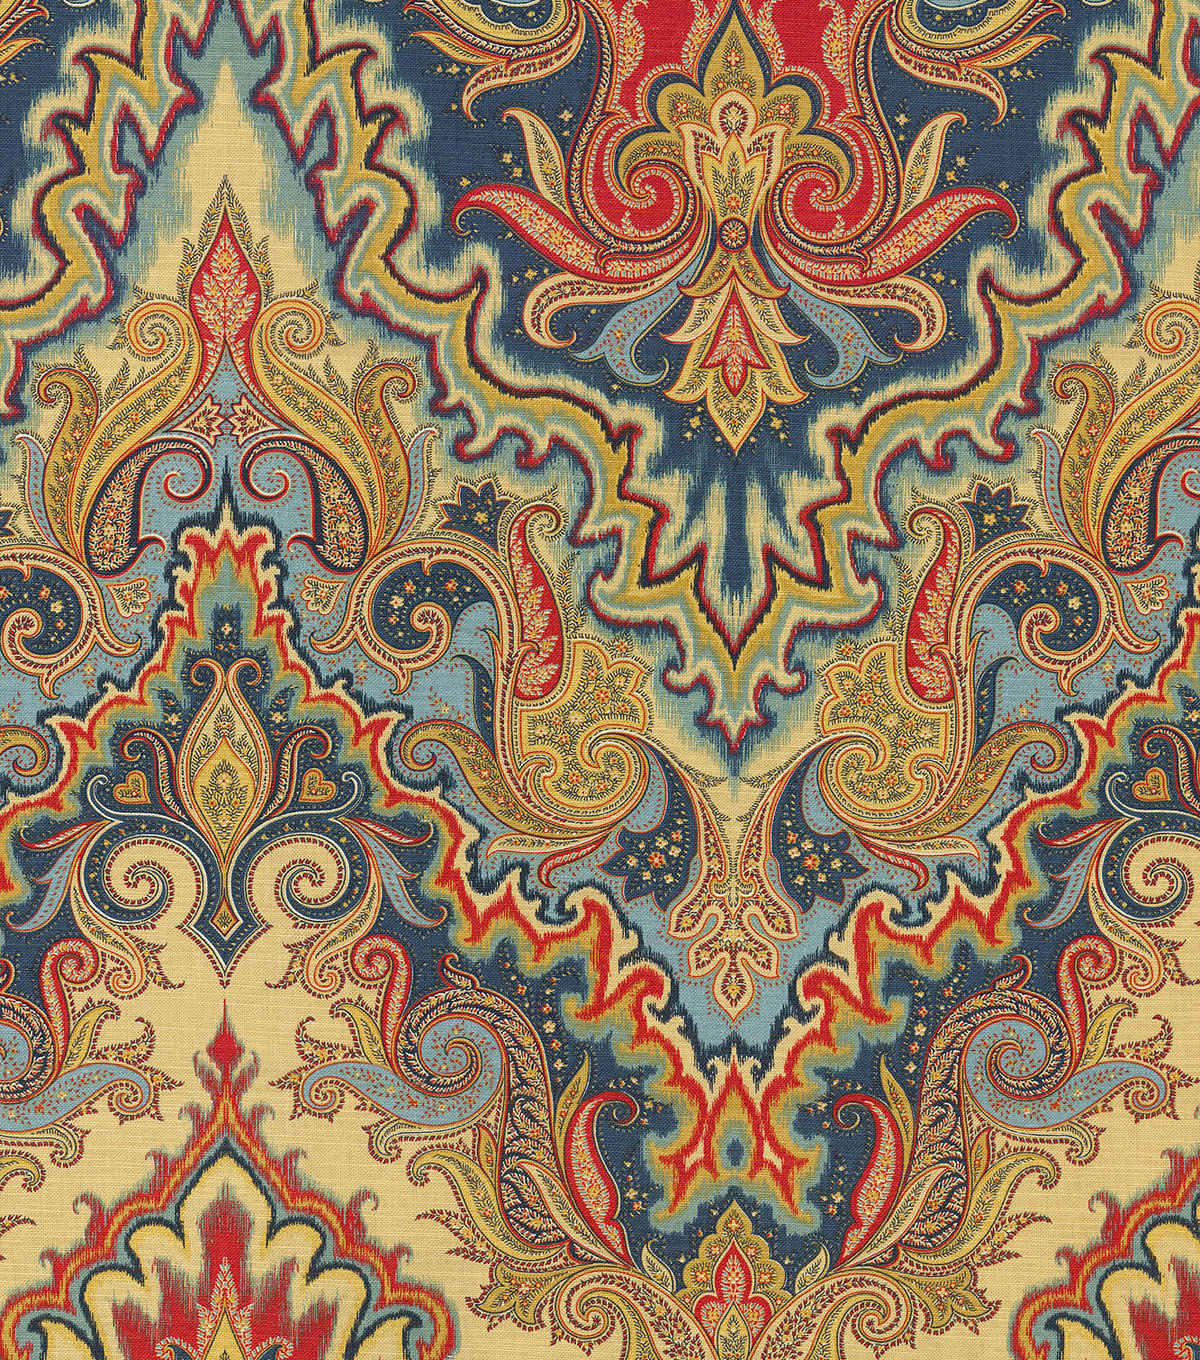 Home Decor Print Fabric- Waverly Paisley Verse Jewel | JOANN